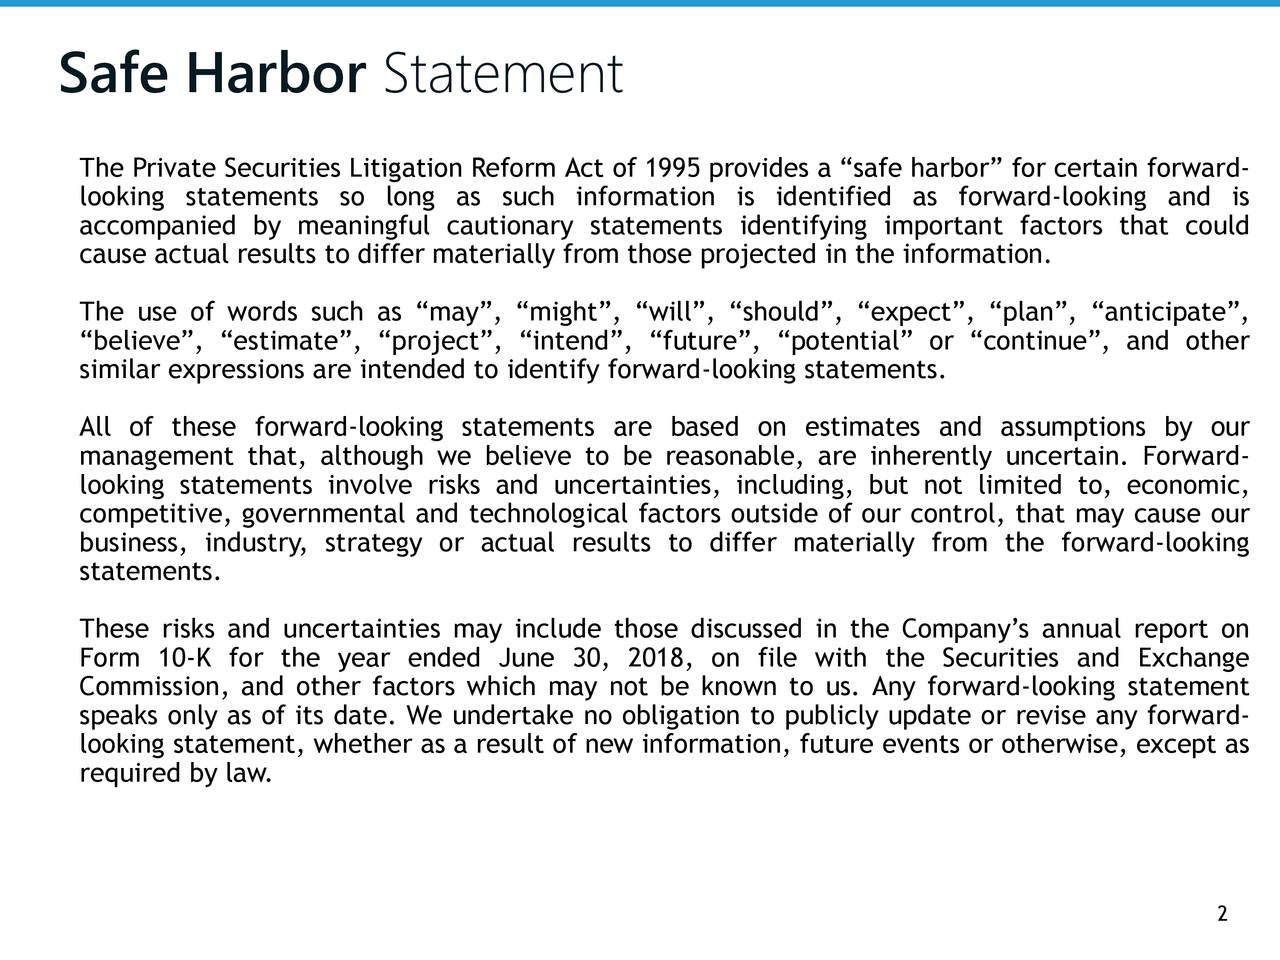 """The Private Securities Litigation Reform Act of 1995 provides a """"safe harbor"""" for certain forward- looking statements so long as such information is identified as forward-looking and is accompanied by meaningful cautionary statements identifying important factors that could cause actual results to differ materially from those projected in the information. The use of words such as """"may"""", """"might"""", """"will"""", """"should"""", """"expect"""", """"plan"""", """"anticipate"""", """"believe"""", """"estimate"""", """"project"""", """"intend"""", """"future"""", """"potential"""" or """"continue"""", and other similar expressions are intended to identify forward-looking statements. All of these forward-looking statements are based on estimates and assumptions by our management that, although we believe to be reasonable, are inherently uncertain. Forward- looking statements involve risks and uncertainties, including, but not limited to, economic, competitive, governmental and technological factors outside of our control, that may cause our business, industry, strategy or actual results to differ materially from the forward-looking statements. These risks and uncertainties may include those discussed in the Company's annual report on Form 10-K for the year ended June 30, 2018, on file with the Securities and Exchange Commission, and other factors which may not be known to us. Any forward-looking statement speaks only as of its date. We undertake no obligation to publicly update or revise any forward- looking statement, whether as a result of new information, future events or otherwise, except as required by law. 2"""